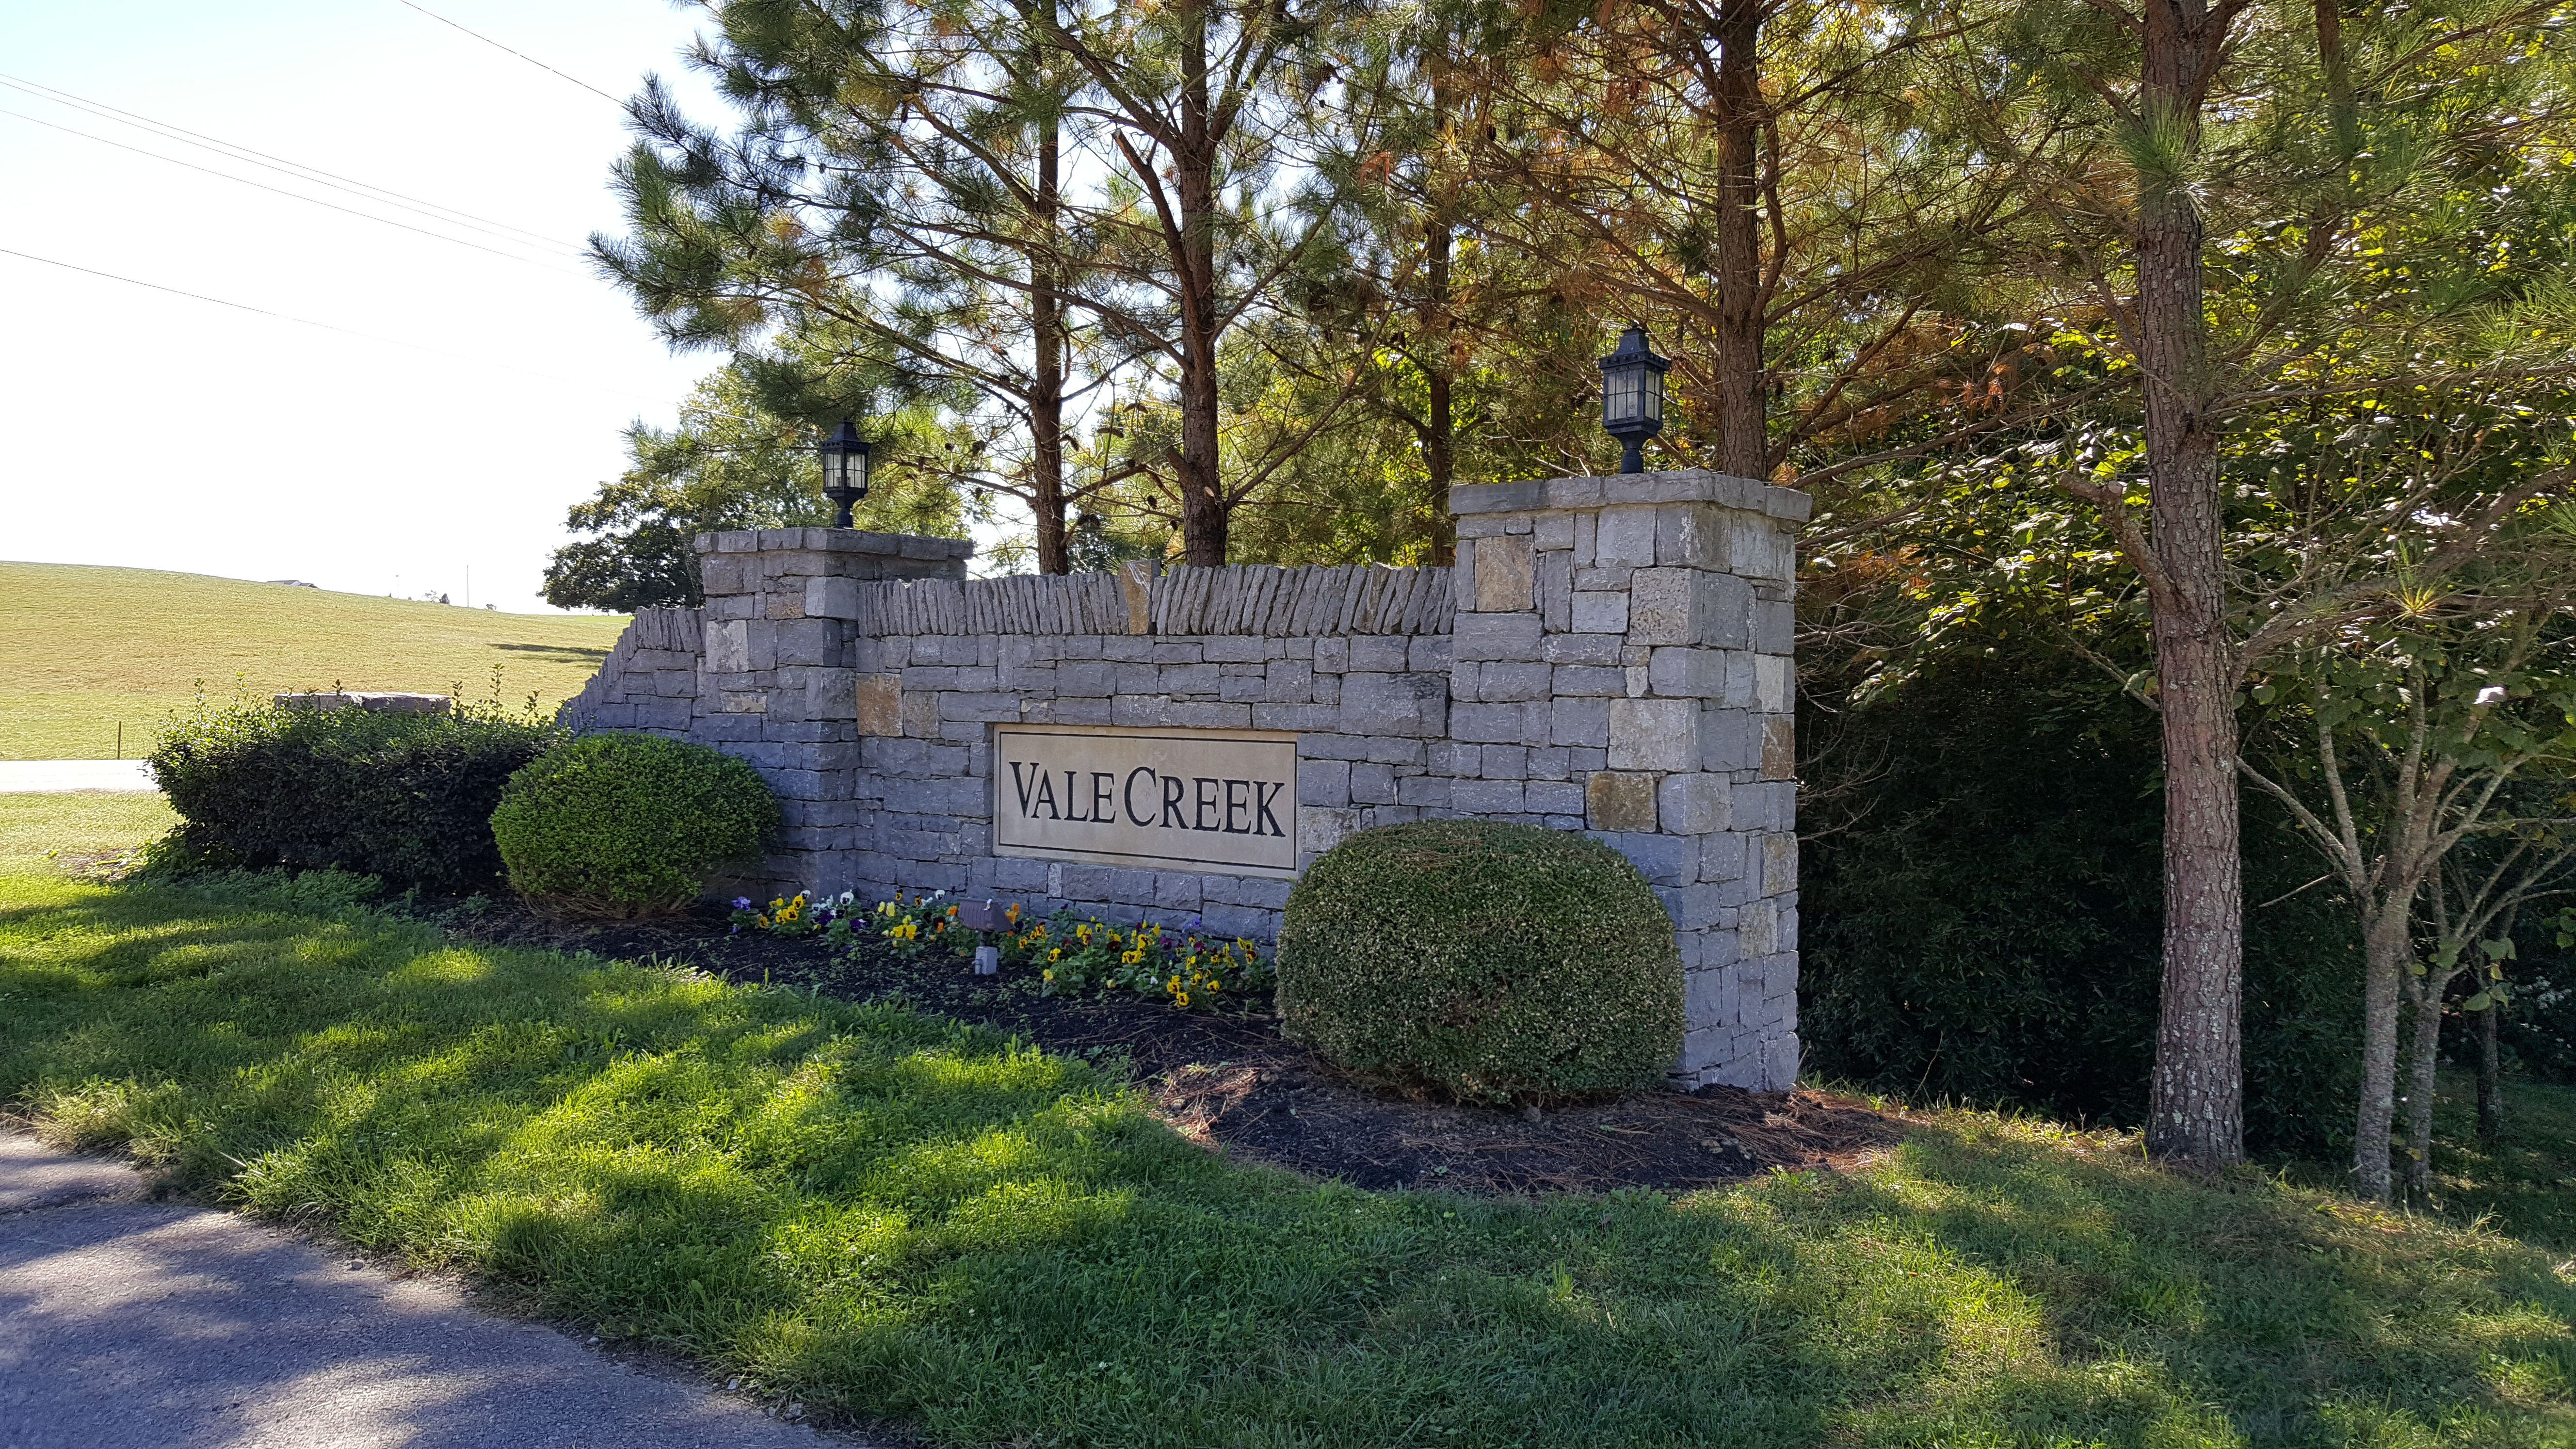 Vale Creek Subdivision complete list of homes for sale in Thompson's Station